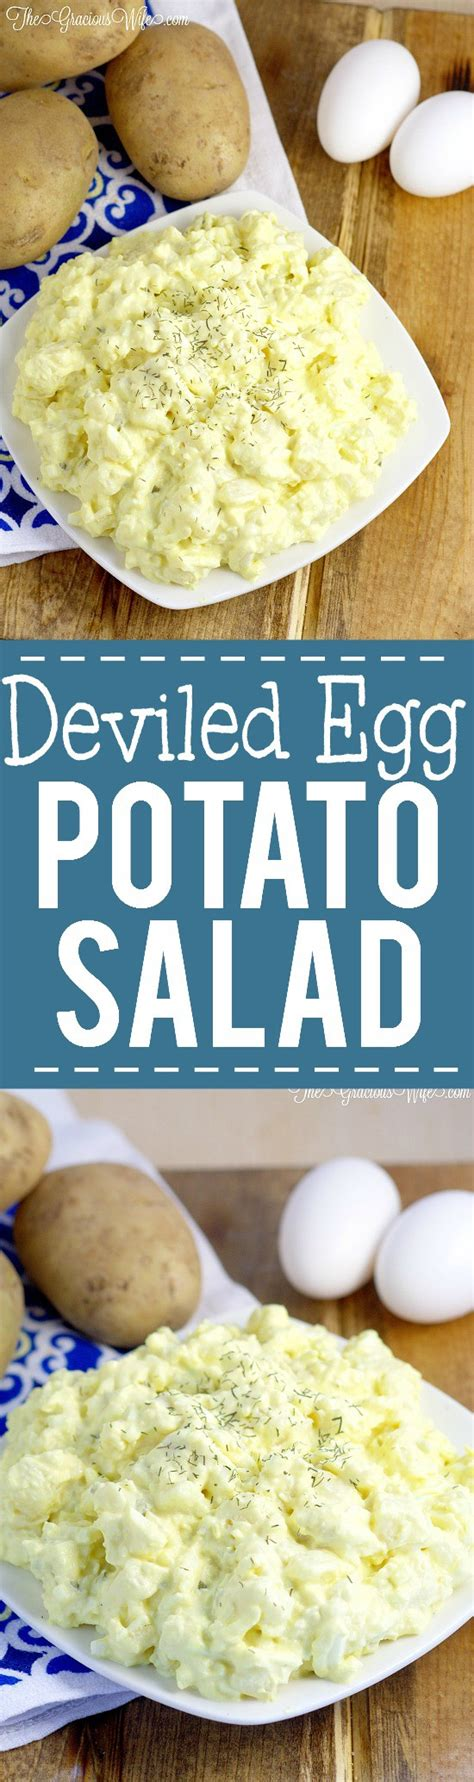 deviled egg potato salad recipe deviled egg potato salad recipe the gracious wife